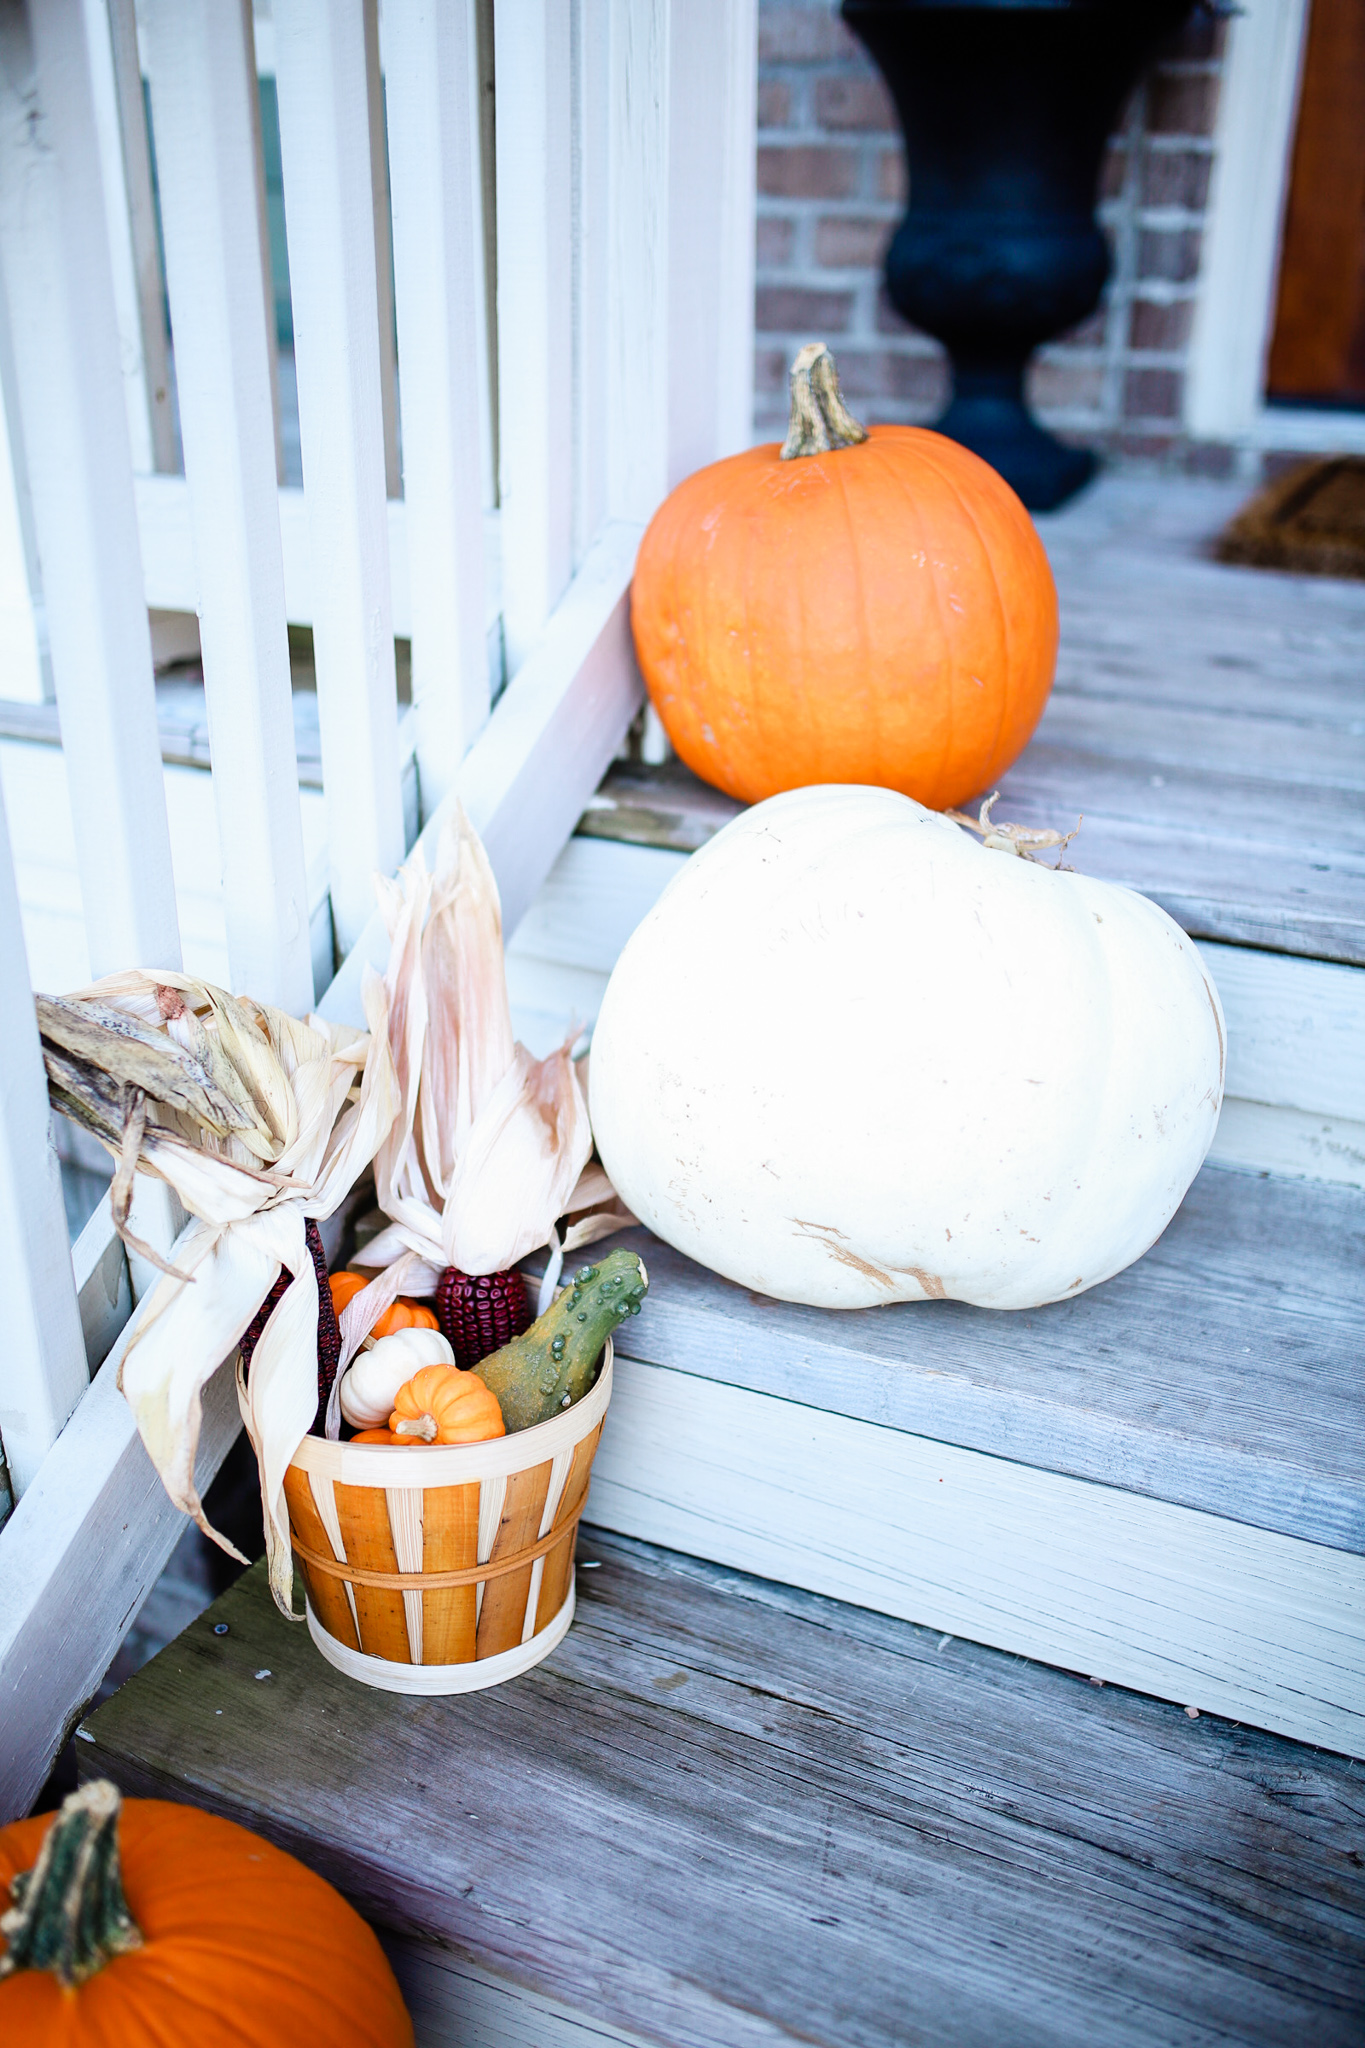 Simple Fall Home Decor with Pumpkins